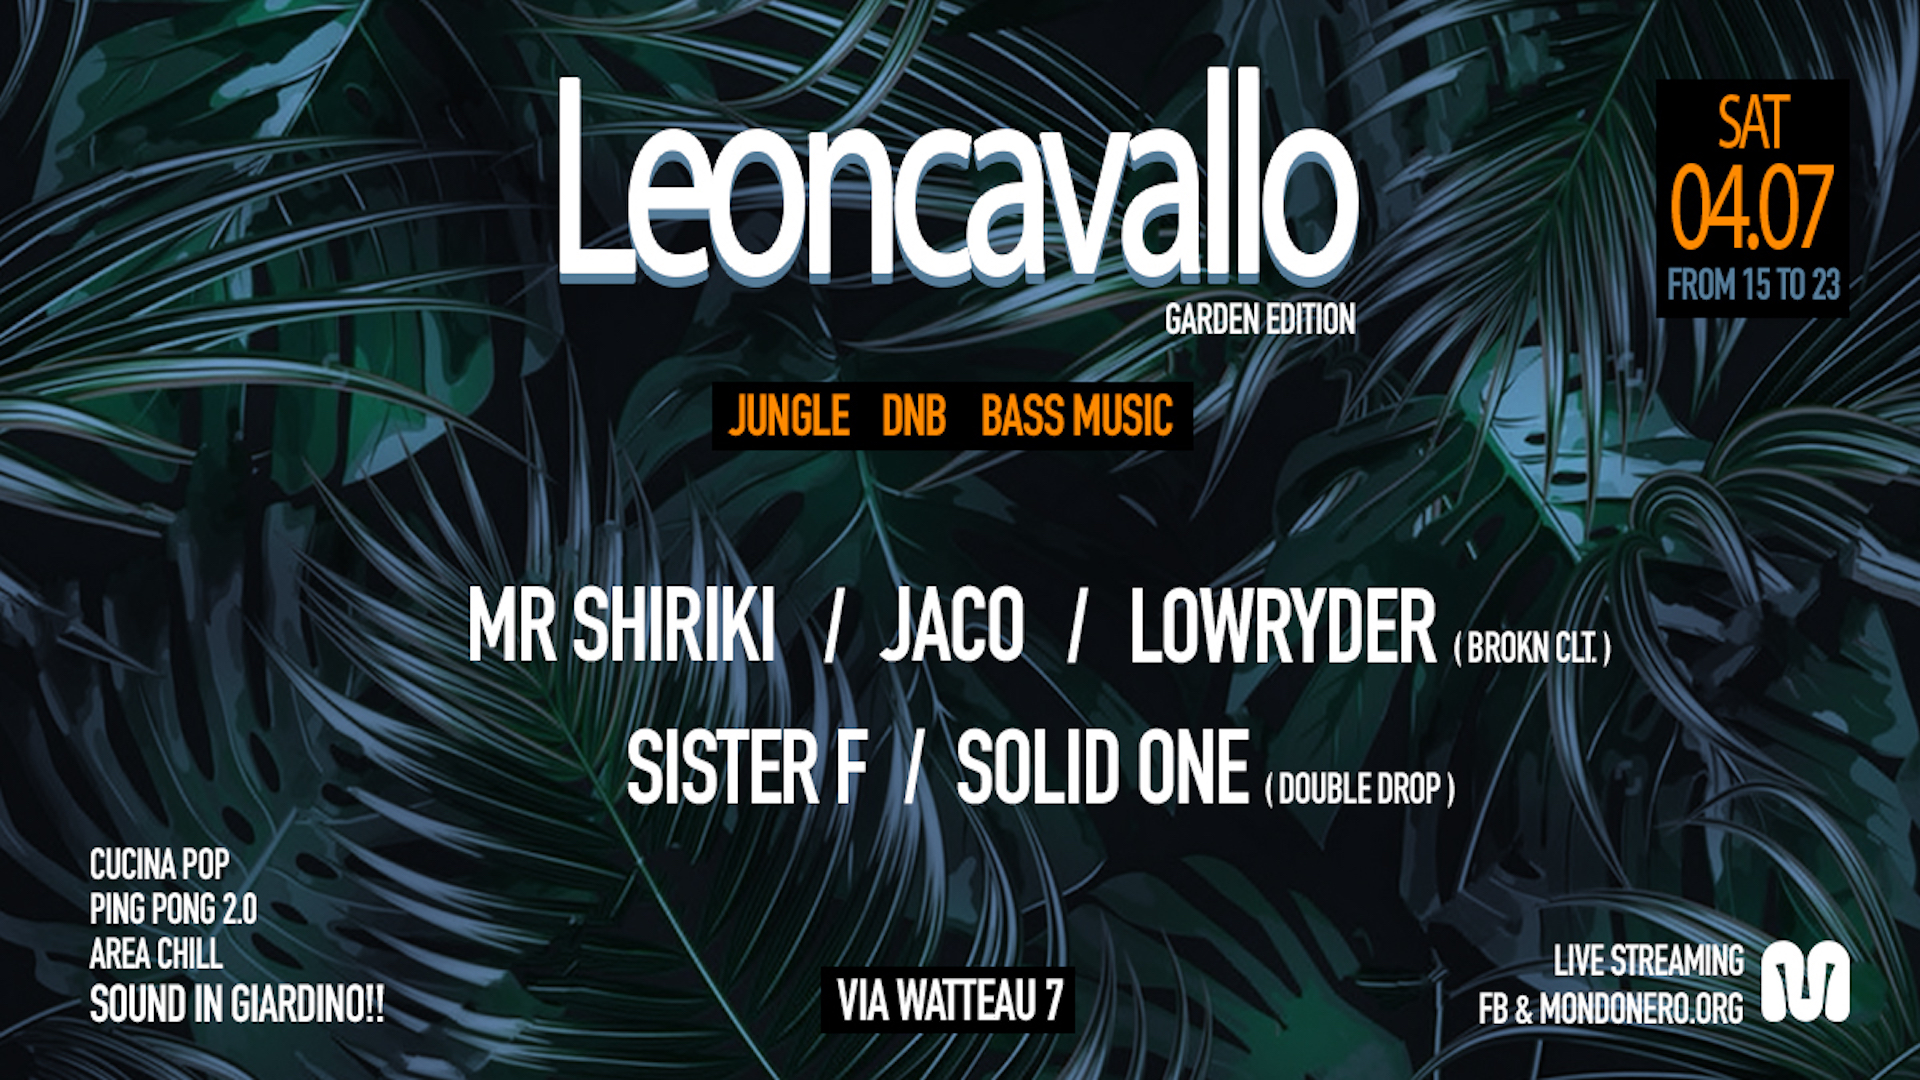 Leoncavallo Garden w/ Double Drop & Brokn Clt.